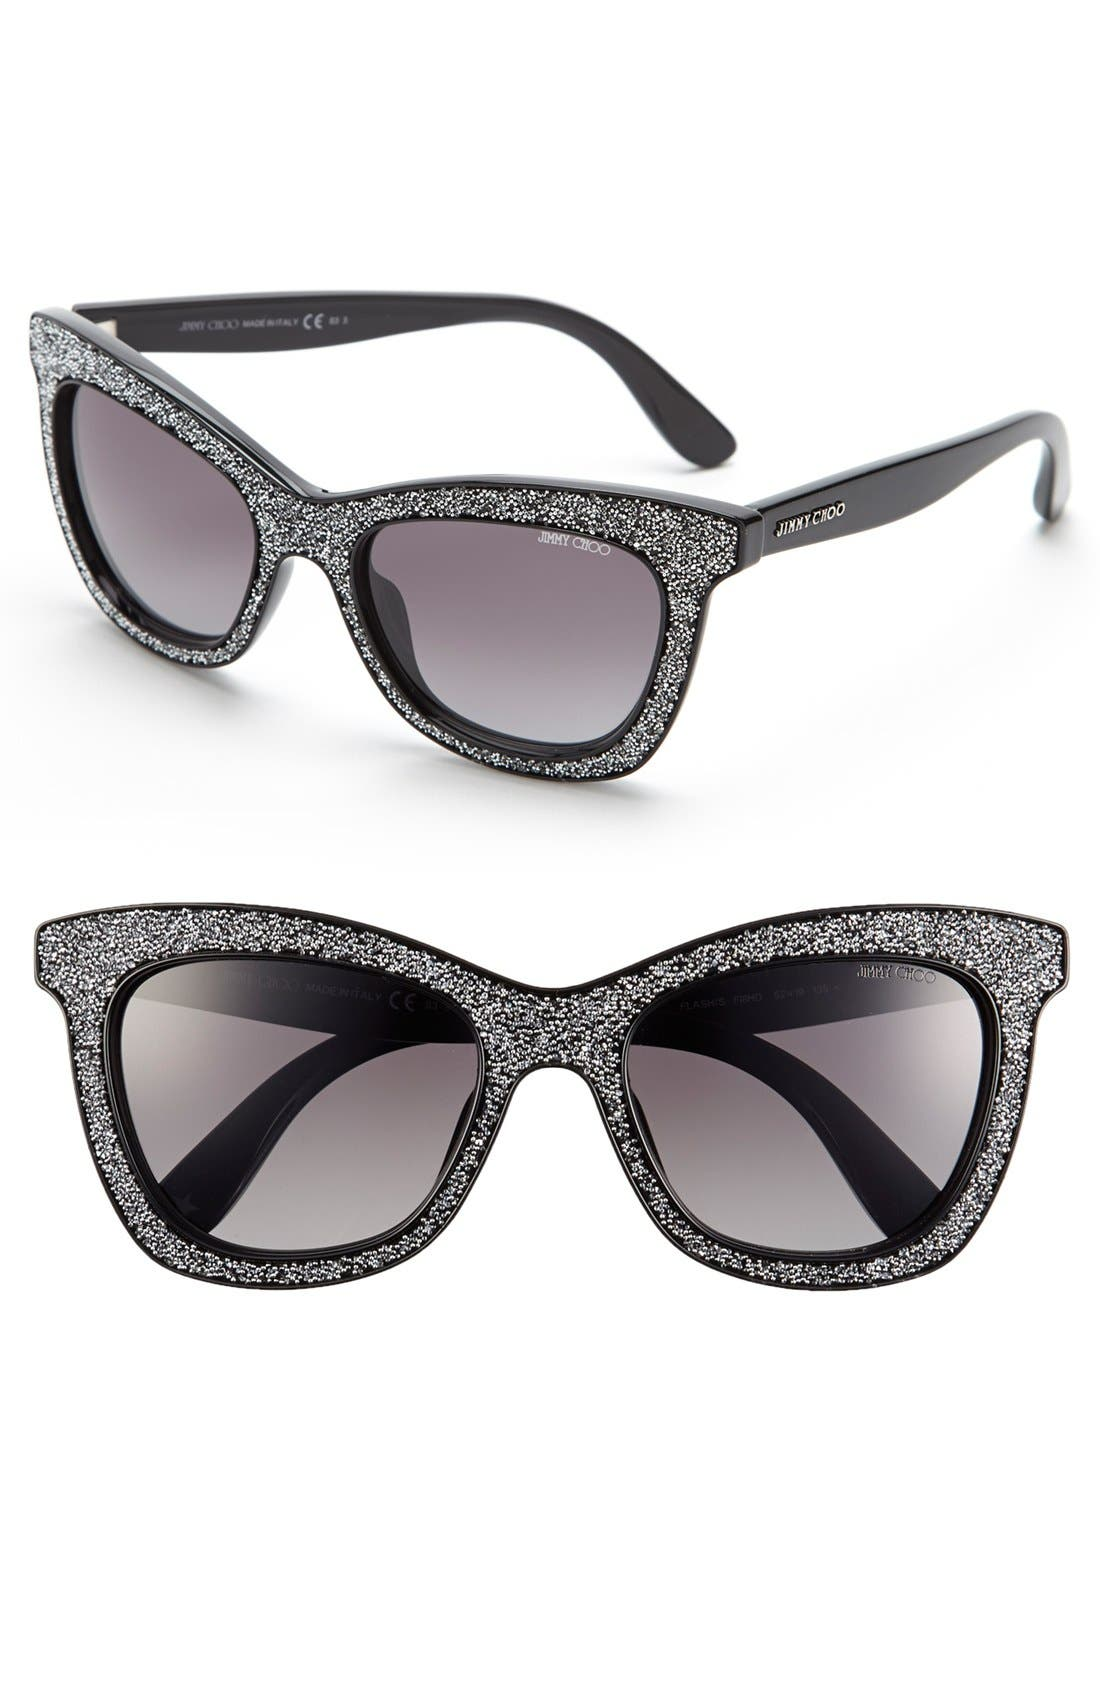 Main Image - Jimmy Choo 'Flash' 52mm Sunglasses